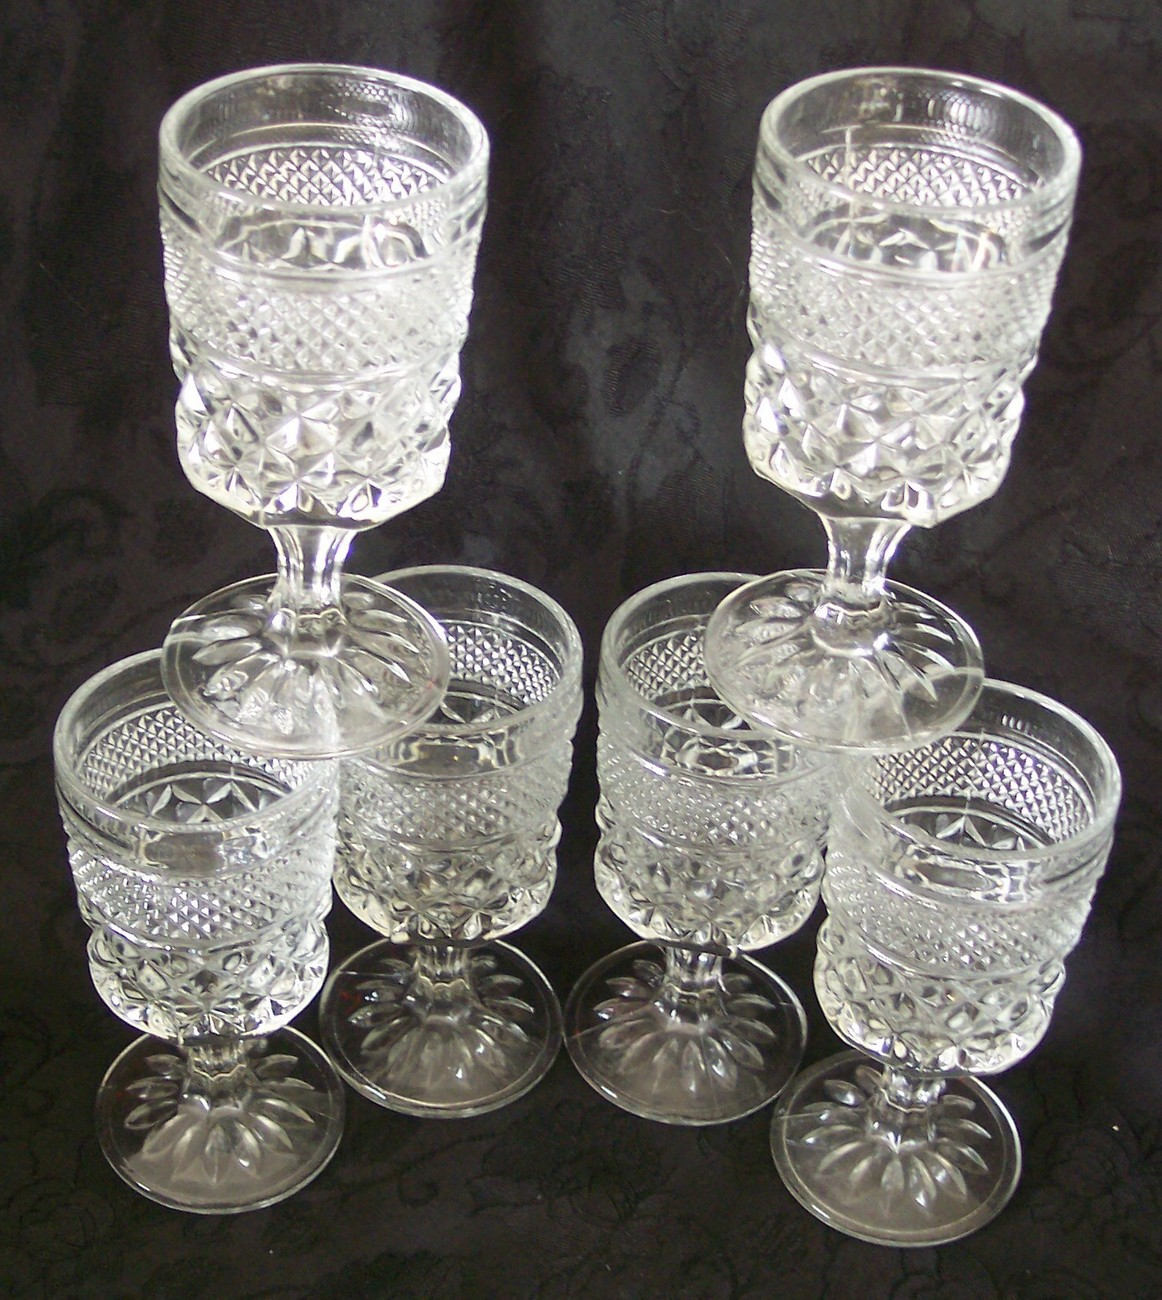 anchor hocking wexford claret wine goblets glasses vintage. Black Bedroom Furniture Sets. Home Design Ideas